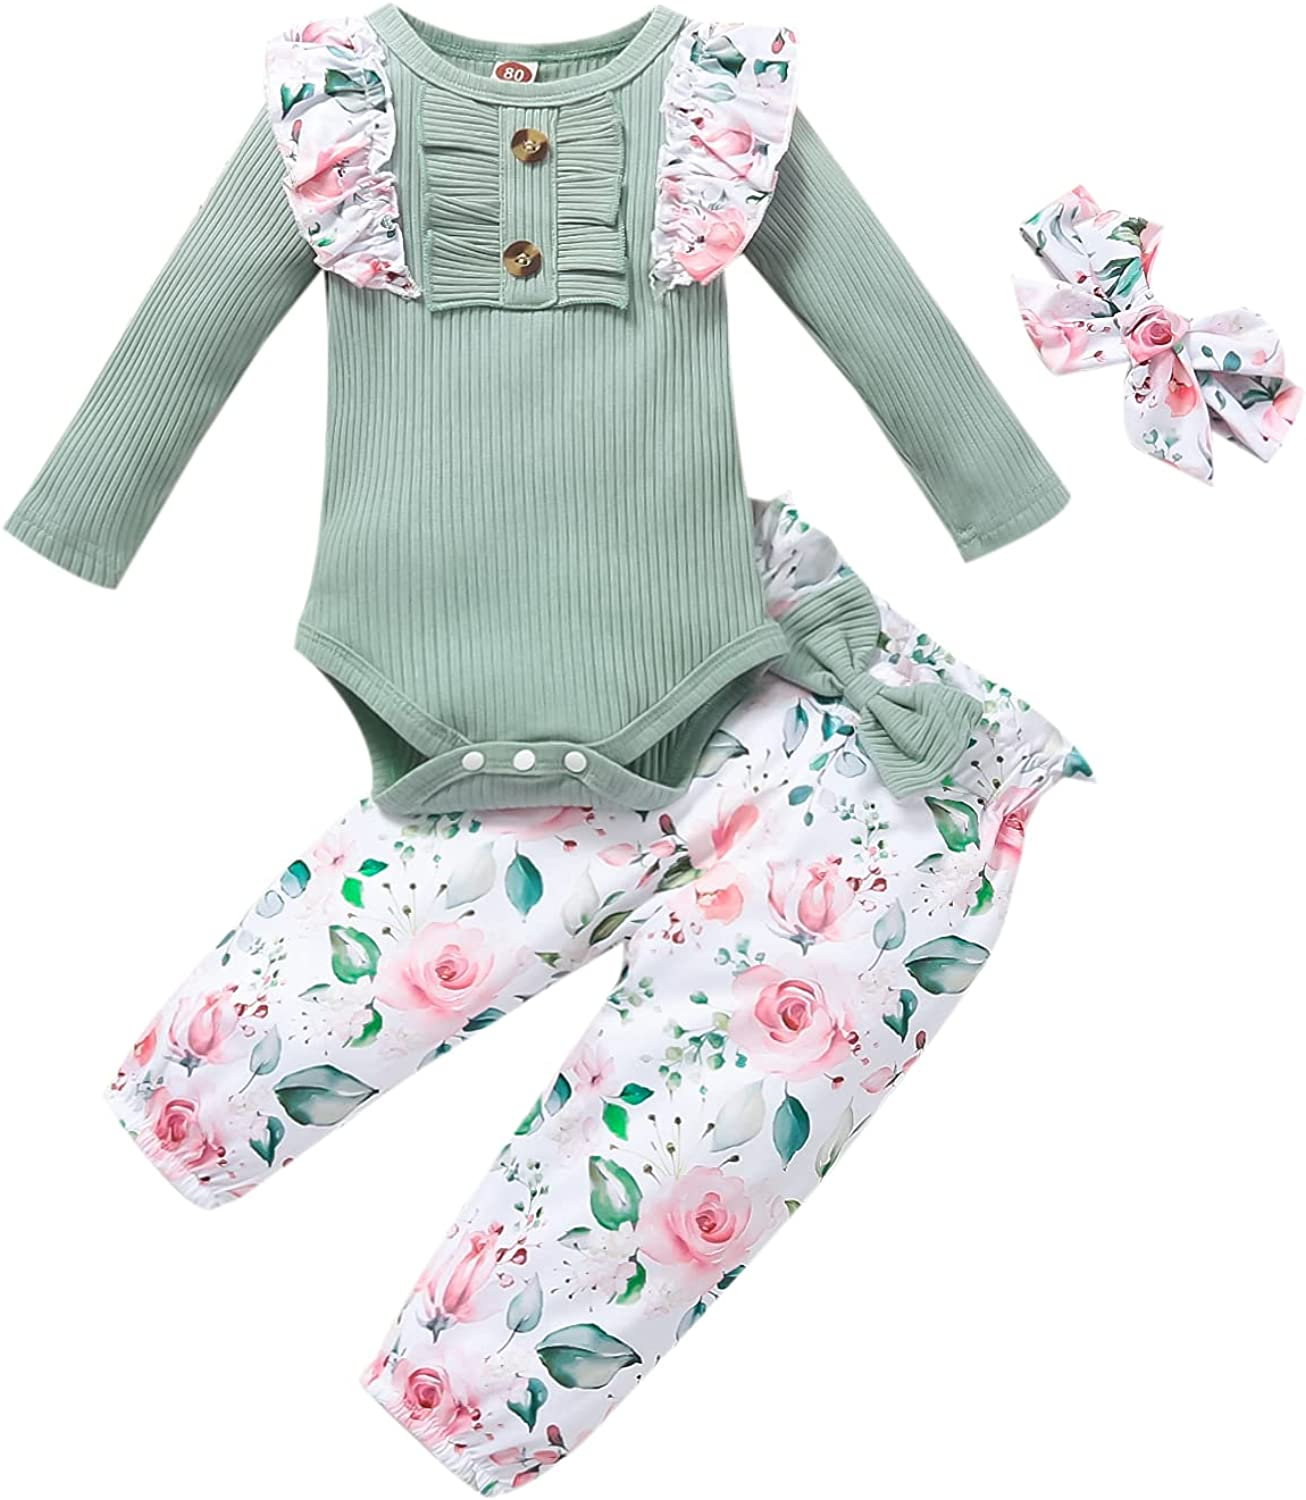 Fall Newborn Infant Baby Girl Clothes Set Long Sleeve Ruffle Bodysuit Romper Floral Pant Outfit Set 3Pcs